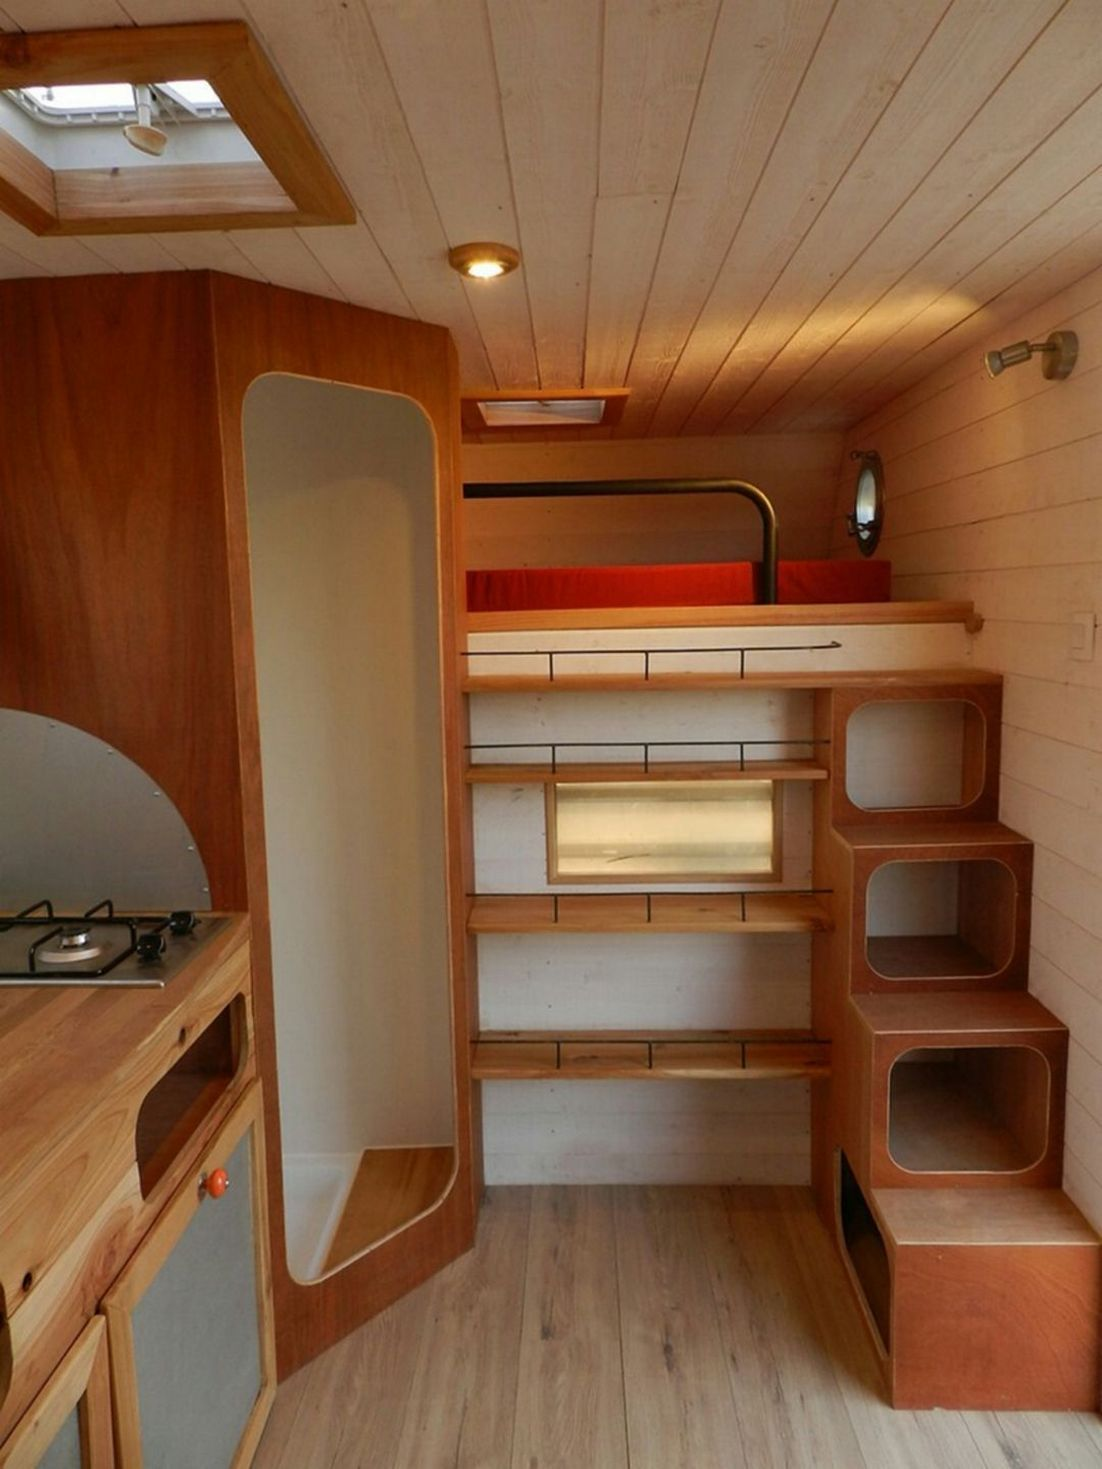 Photo of 81 van conversion ideas layout must know #Conversion #ideas #layout #Trends #Van…